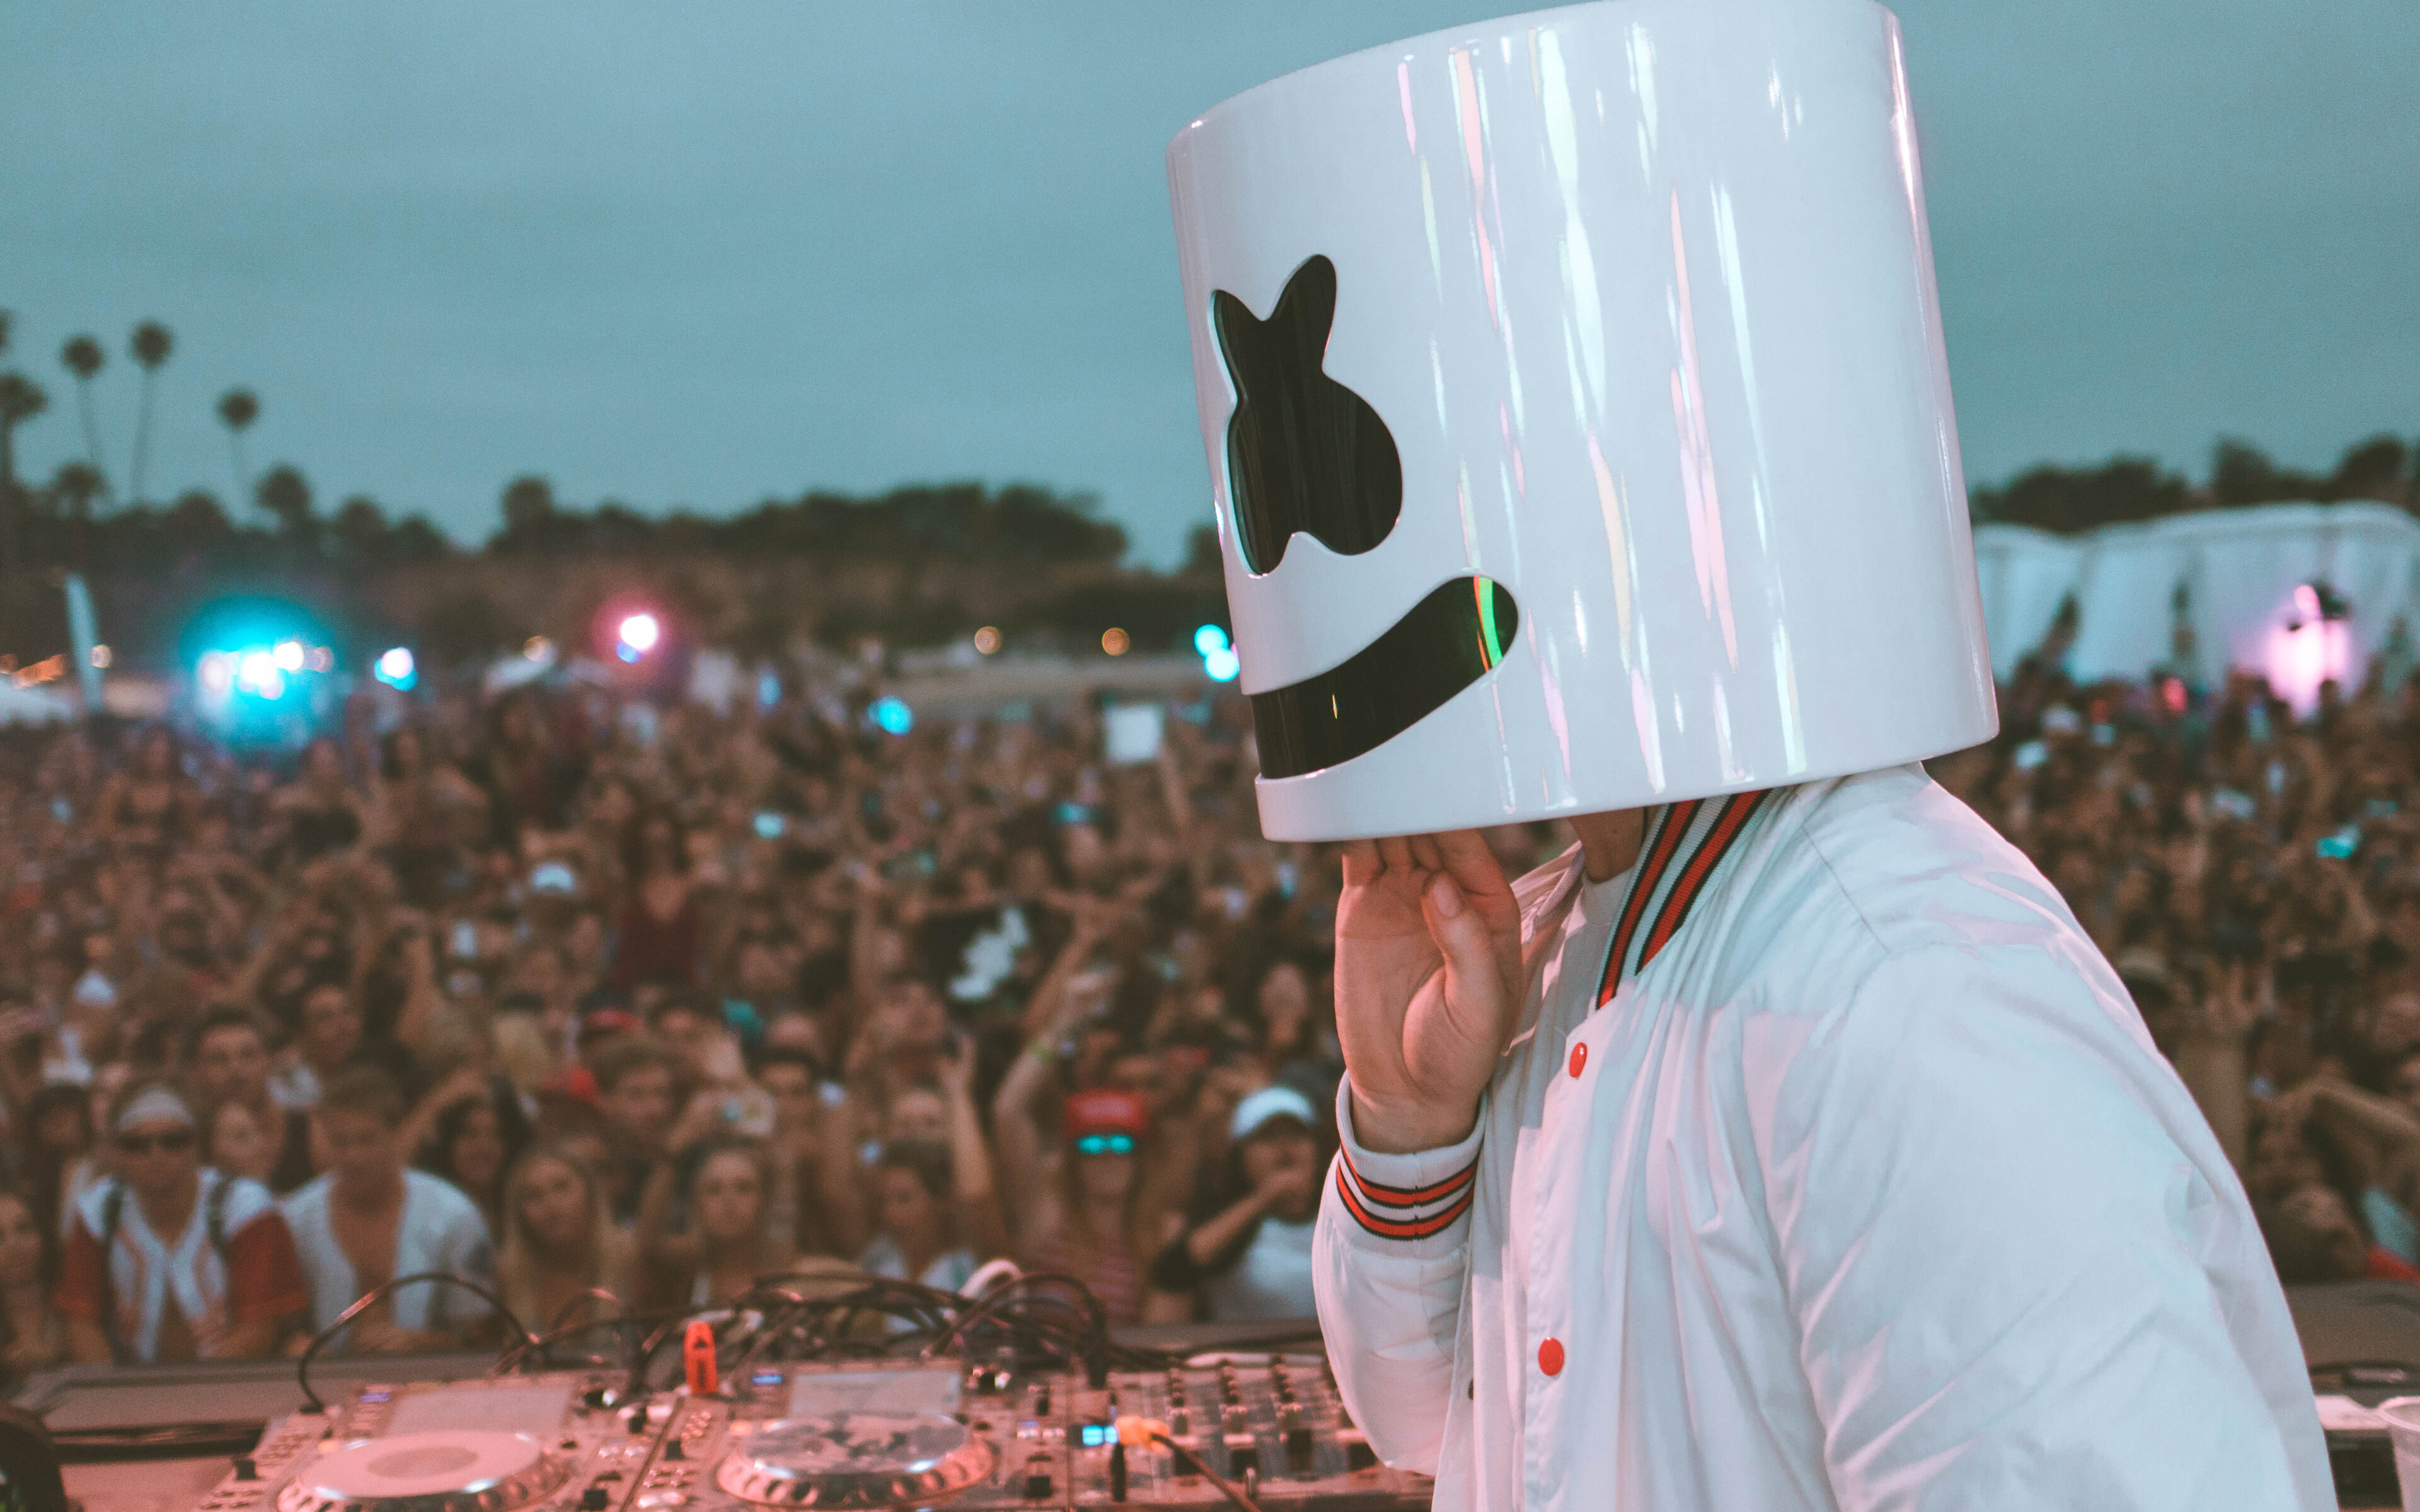 marshmello-performing-live-stage-crowd-5k-lg.jpg